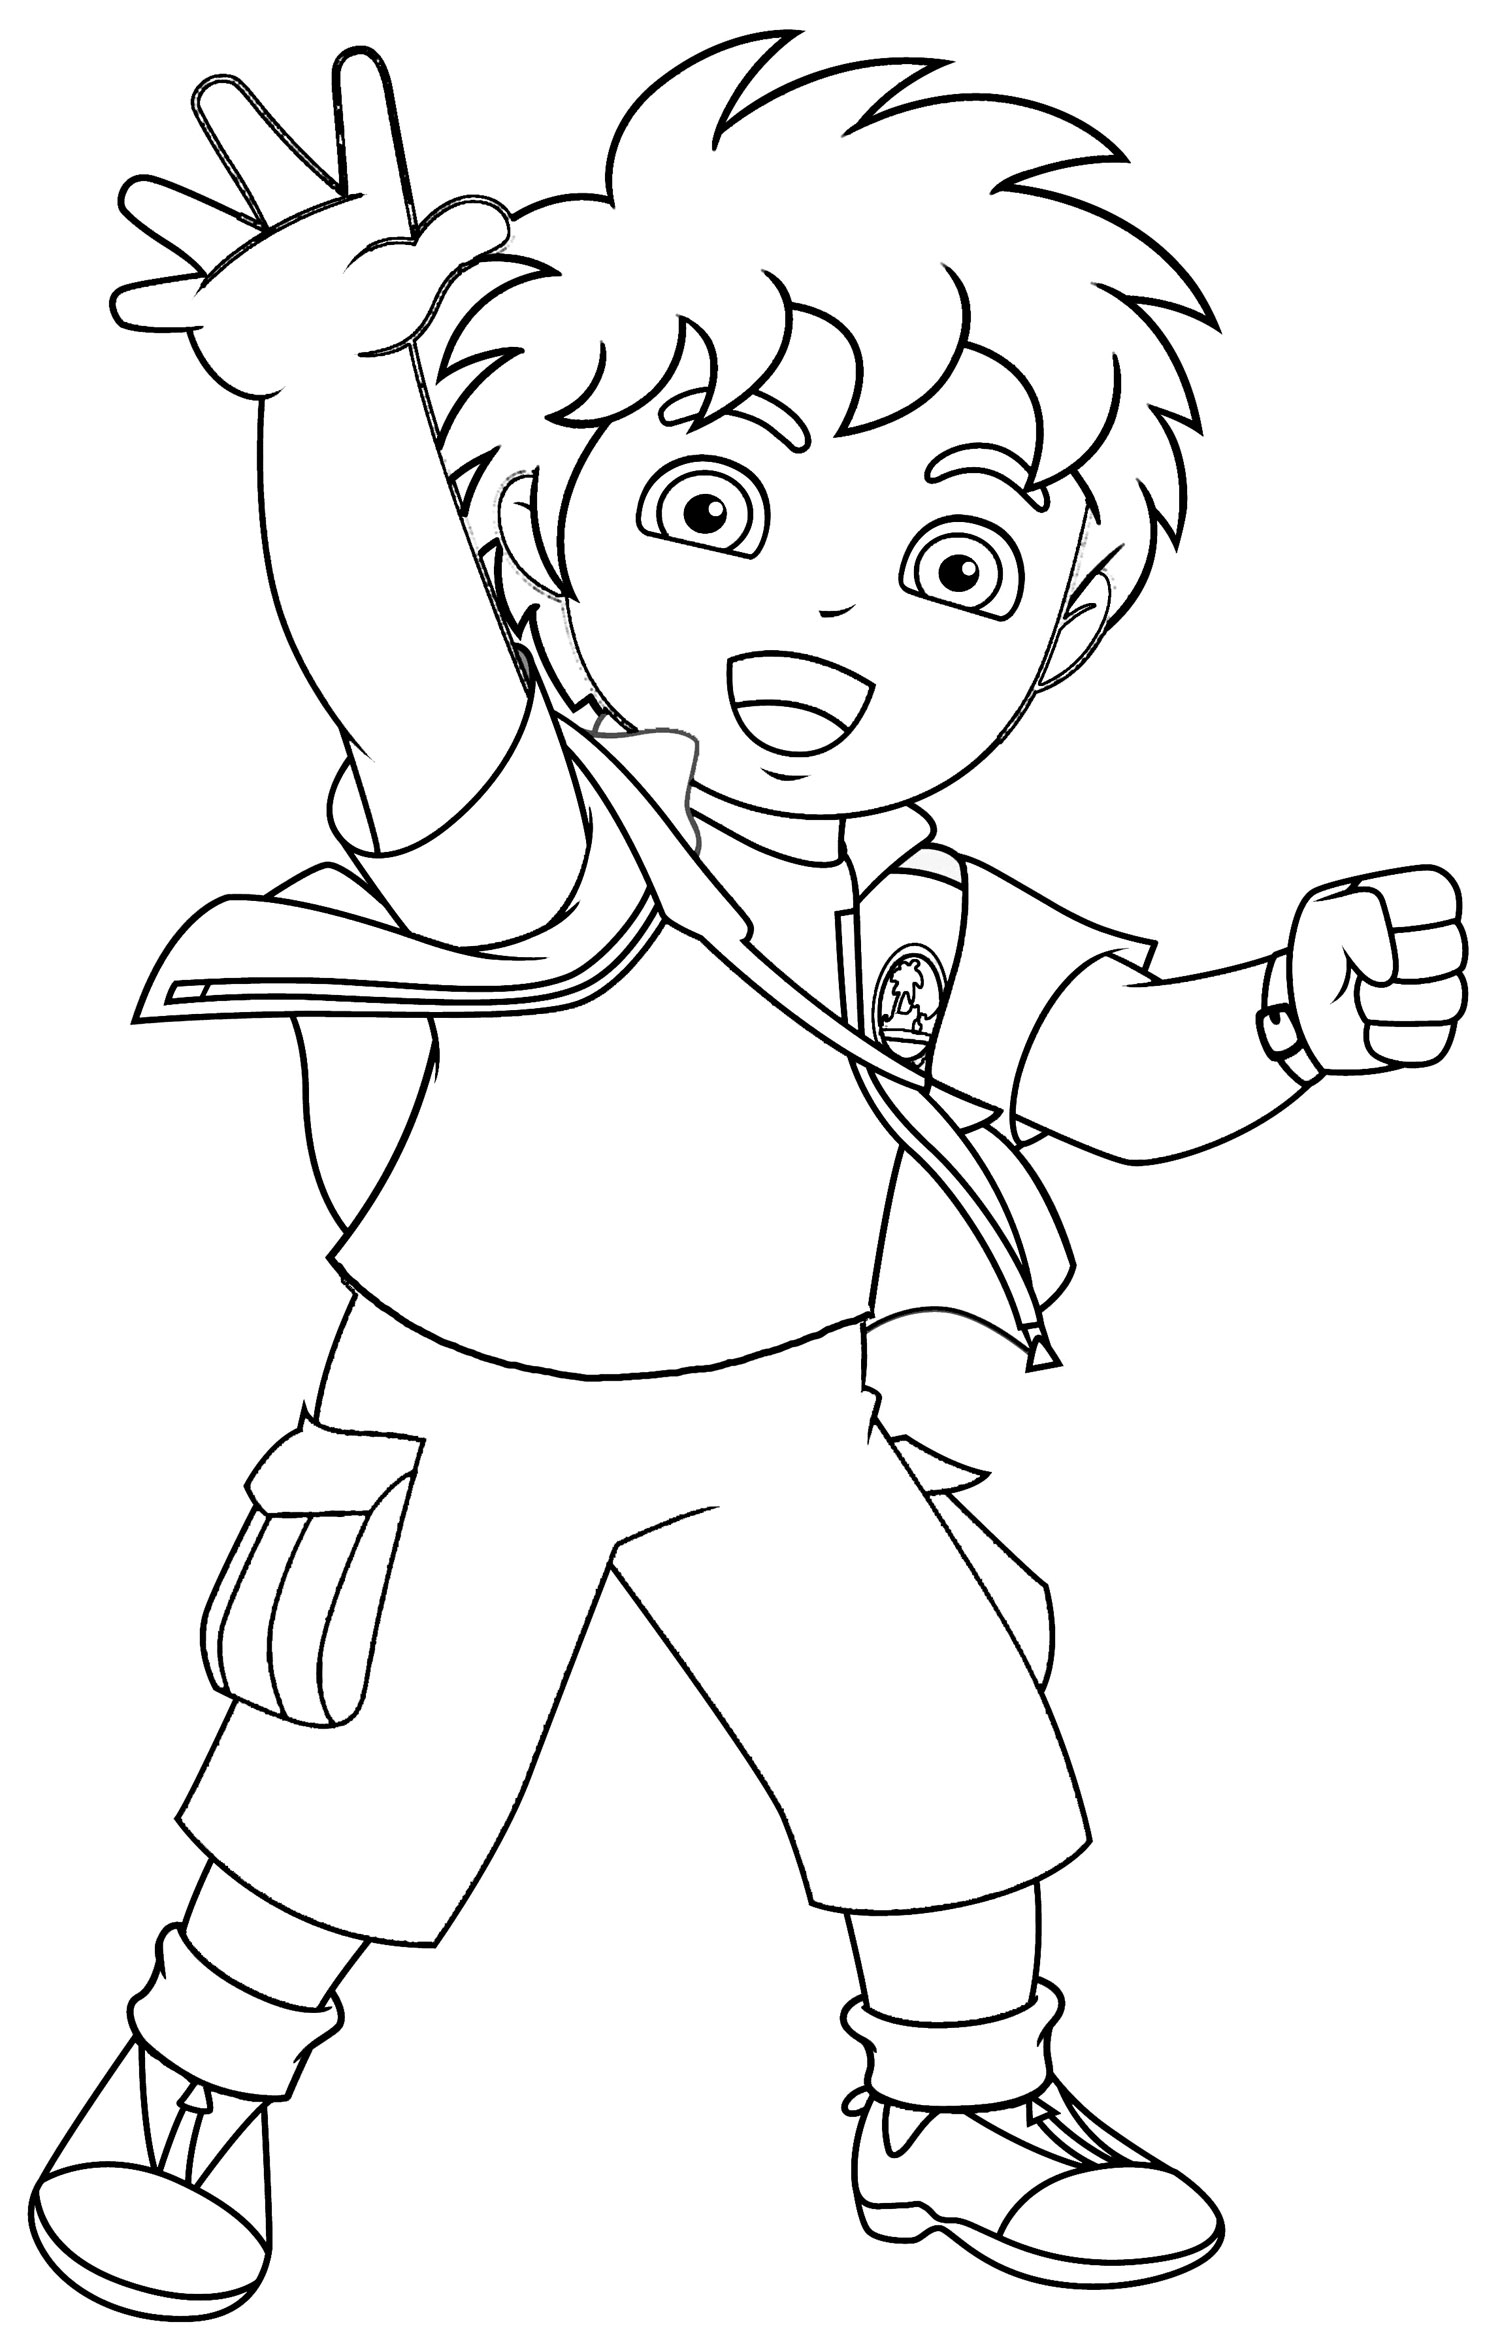 Free Printable Diego Coloring Pages For Kids Free Coloring Pictures To Print